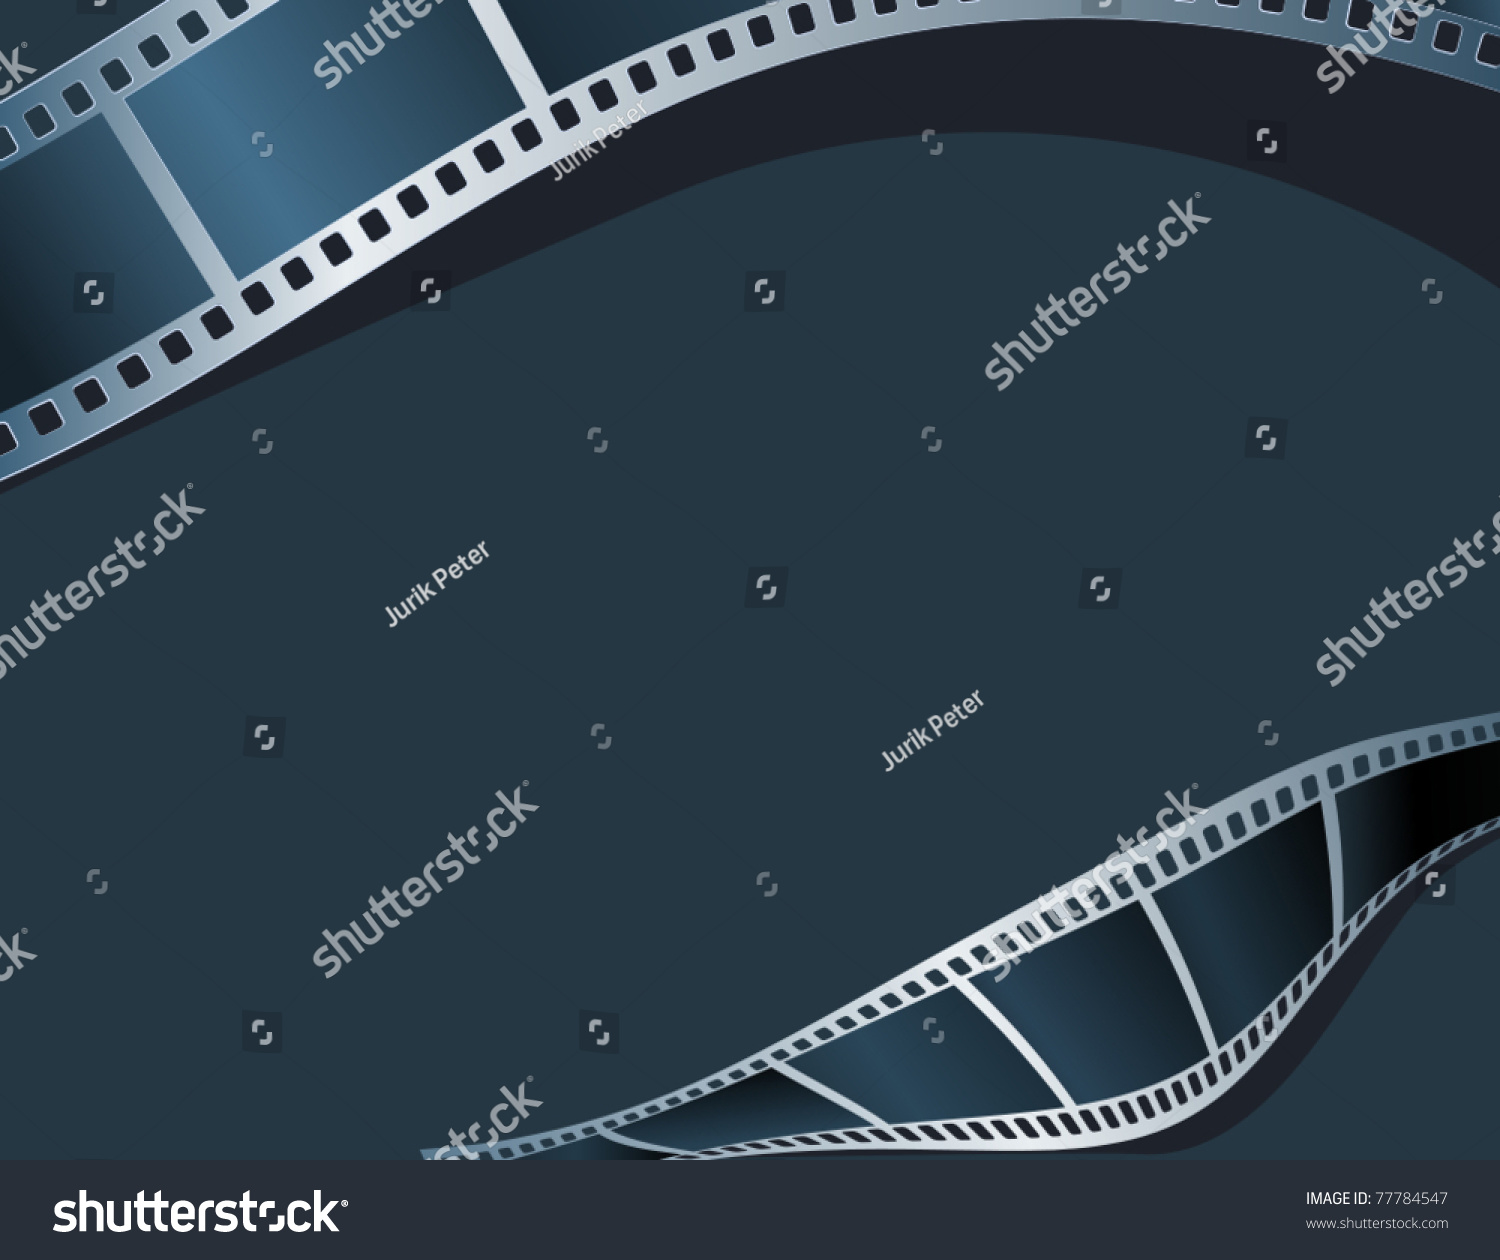 Blank photo video template stock vector 77784547 shutterstock blank photo video template pronofoot35fo Image collections